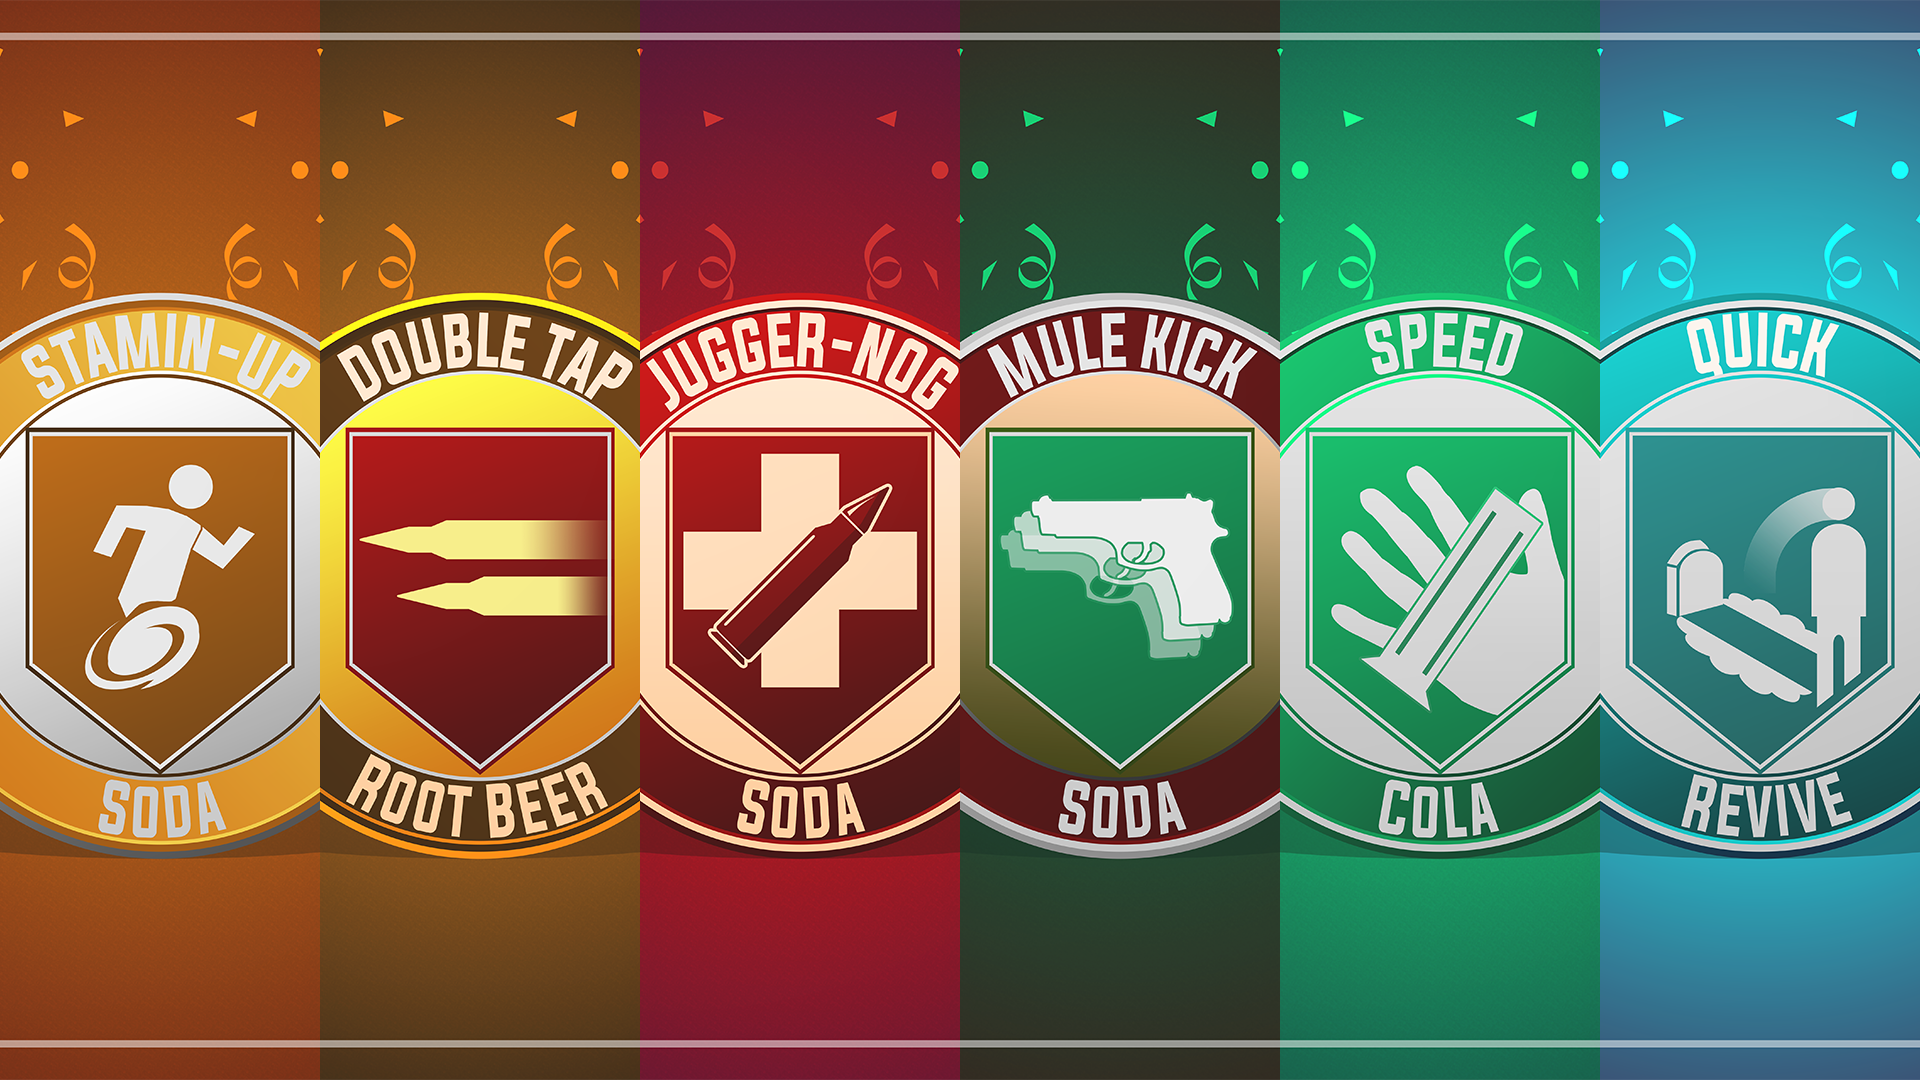 Call Of Duty Perks By Njd Design On Deviantart